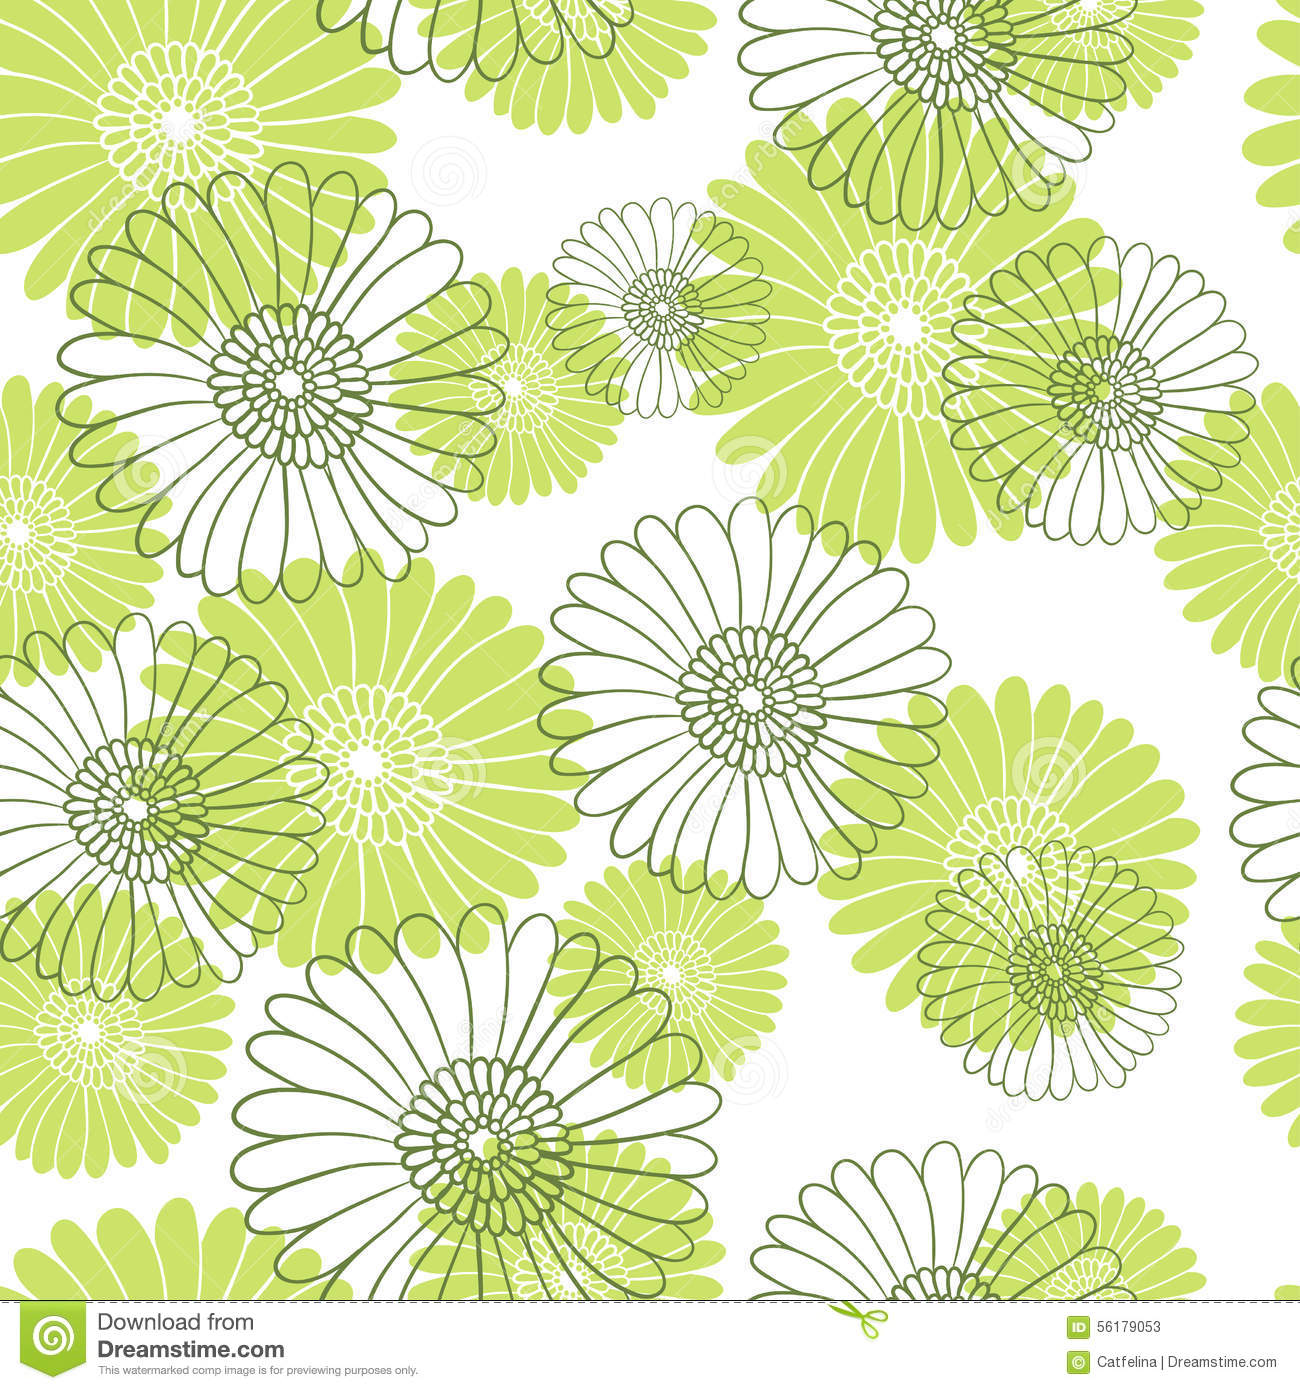 Green and white floral pattern - photo#28